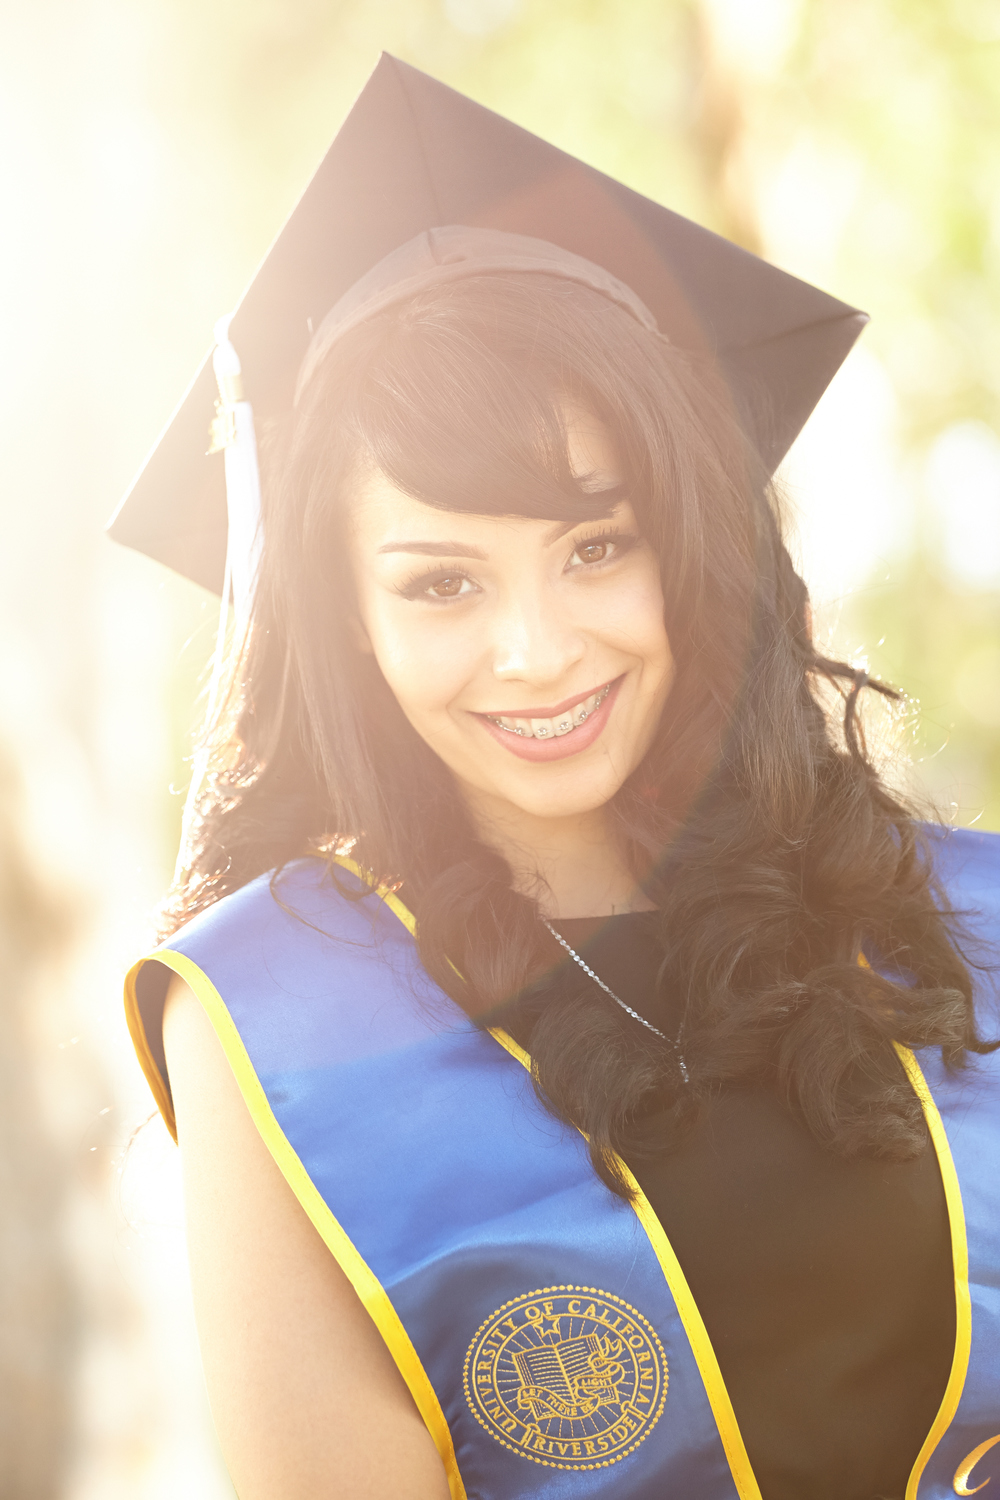 Blanca Zamora - Graduating Senior at UCR